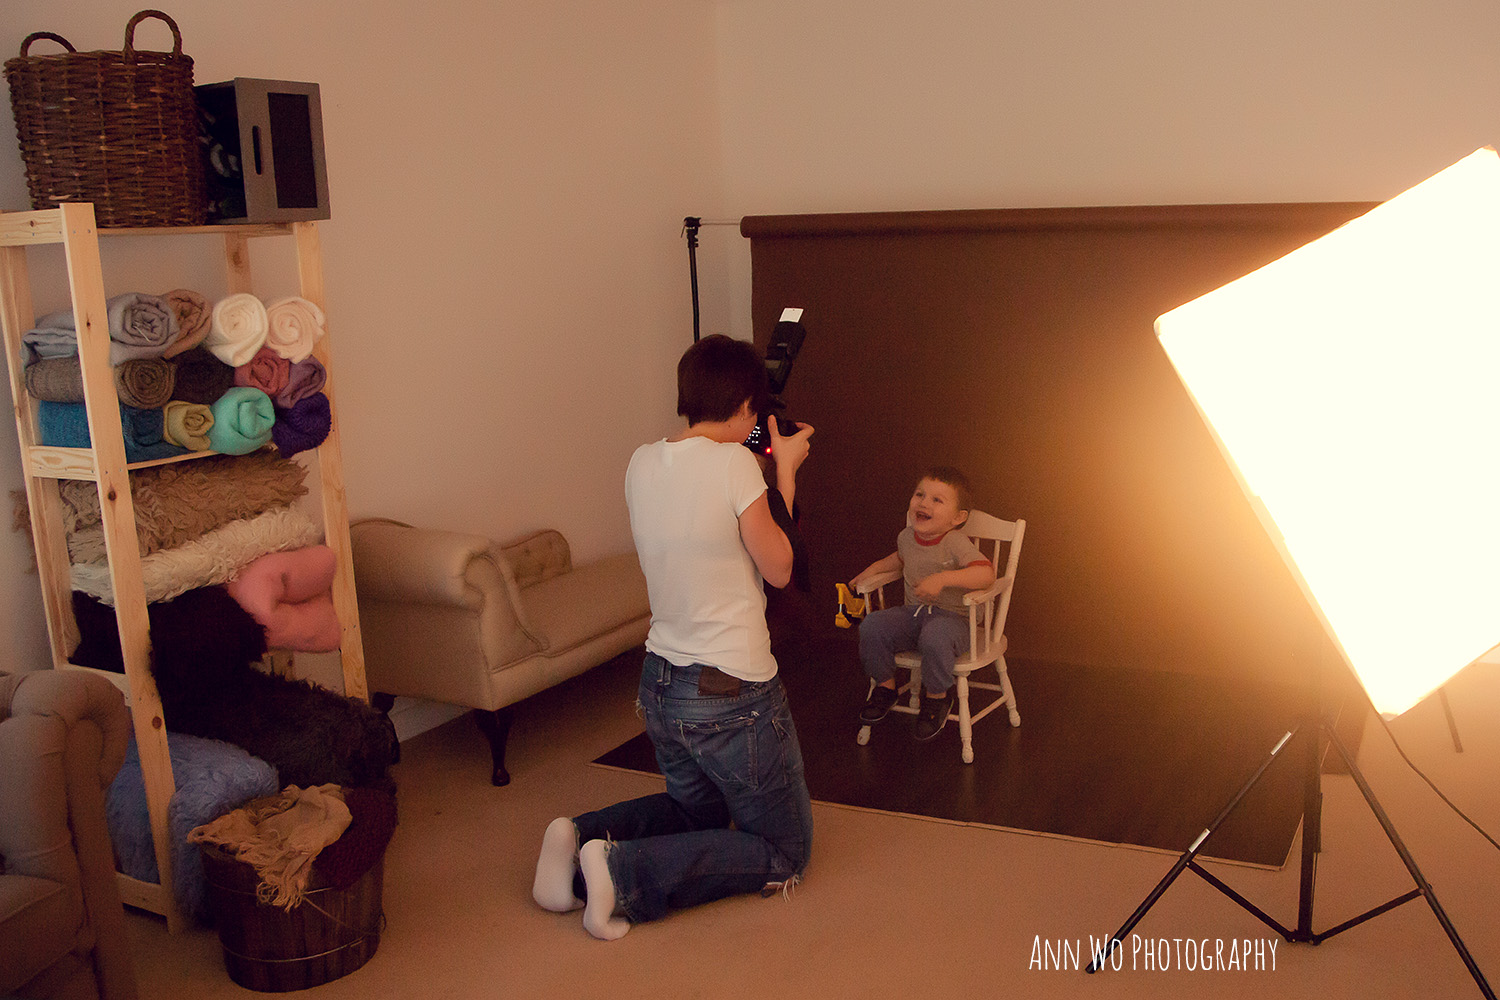 Photography studio lighting set up for minisessions with